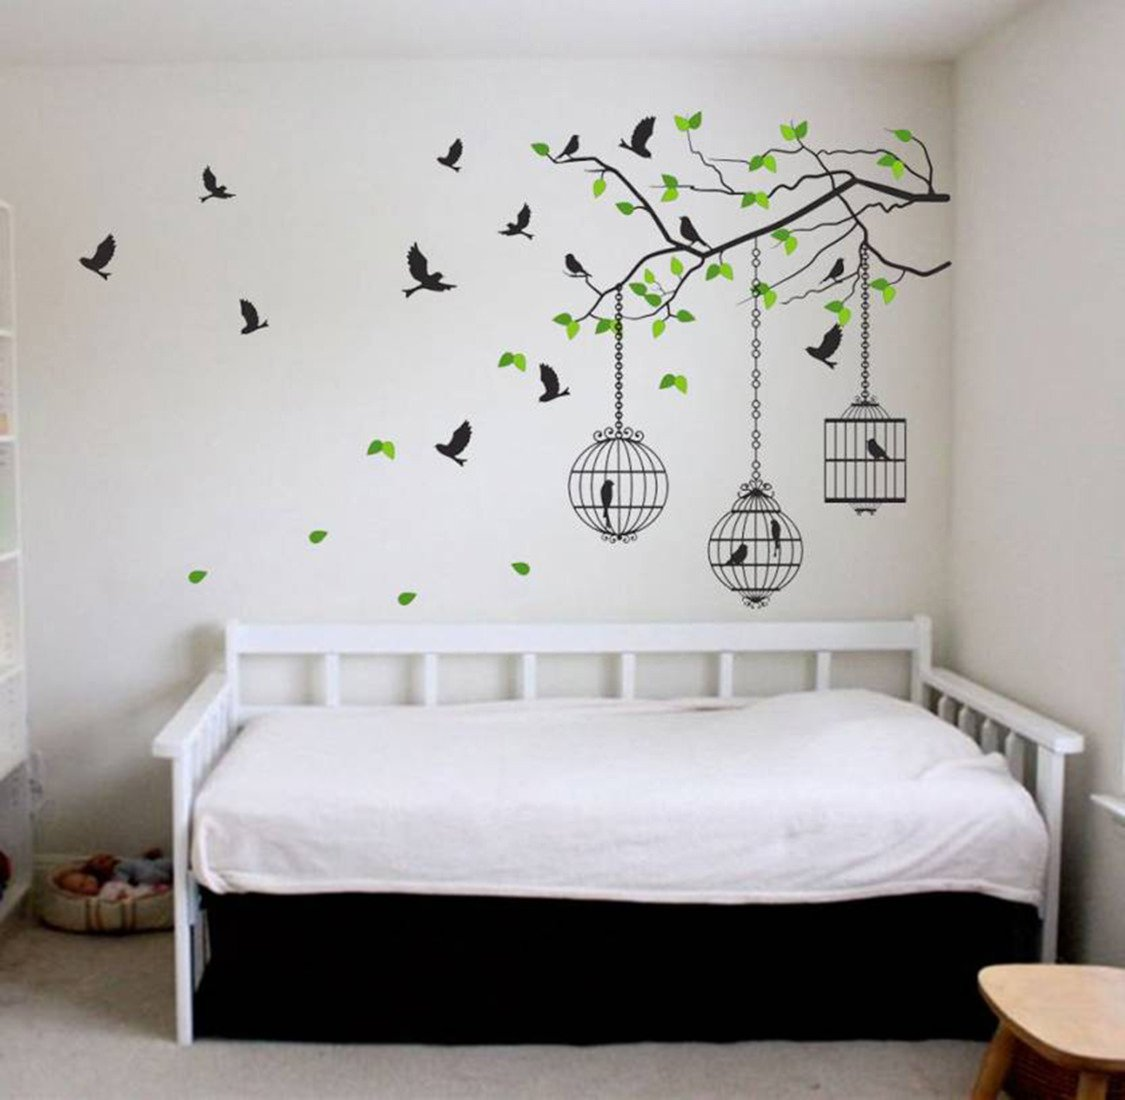 Decals Design Tree Branches With Leaves Birds And Cages Wall Sticker Pvc Vinyl 50 Cm X 70 Cm Multicolour Buy Online In Macau At Macau Desertcart Com Productid 64767831